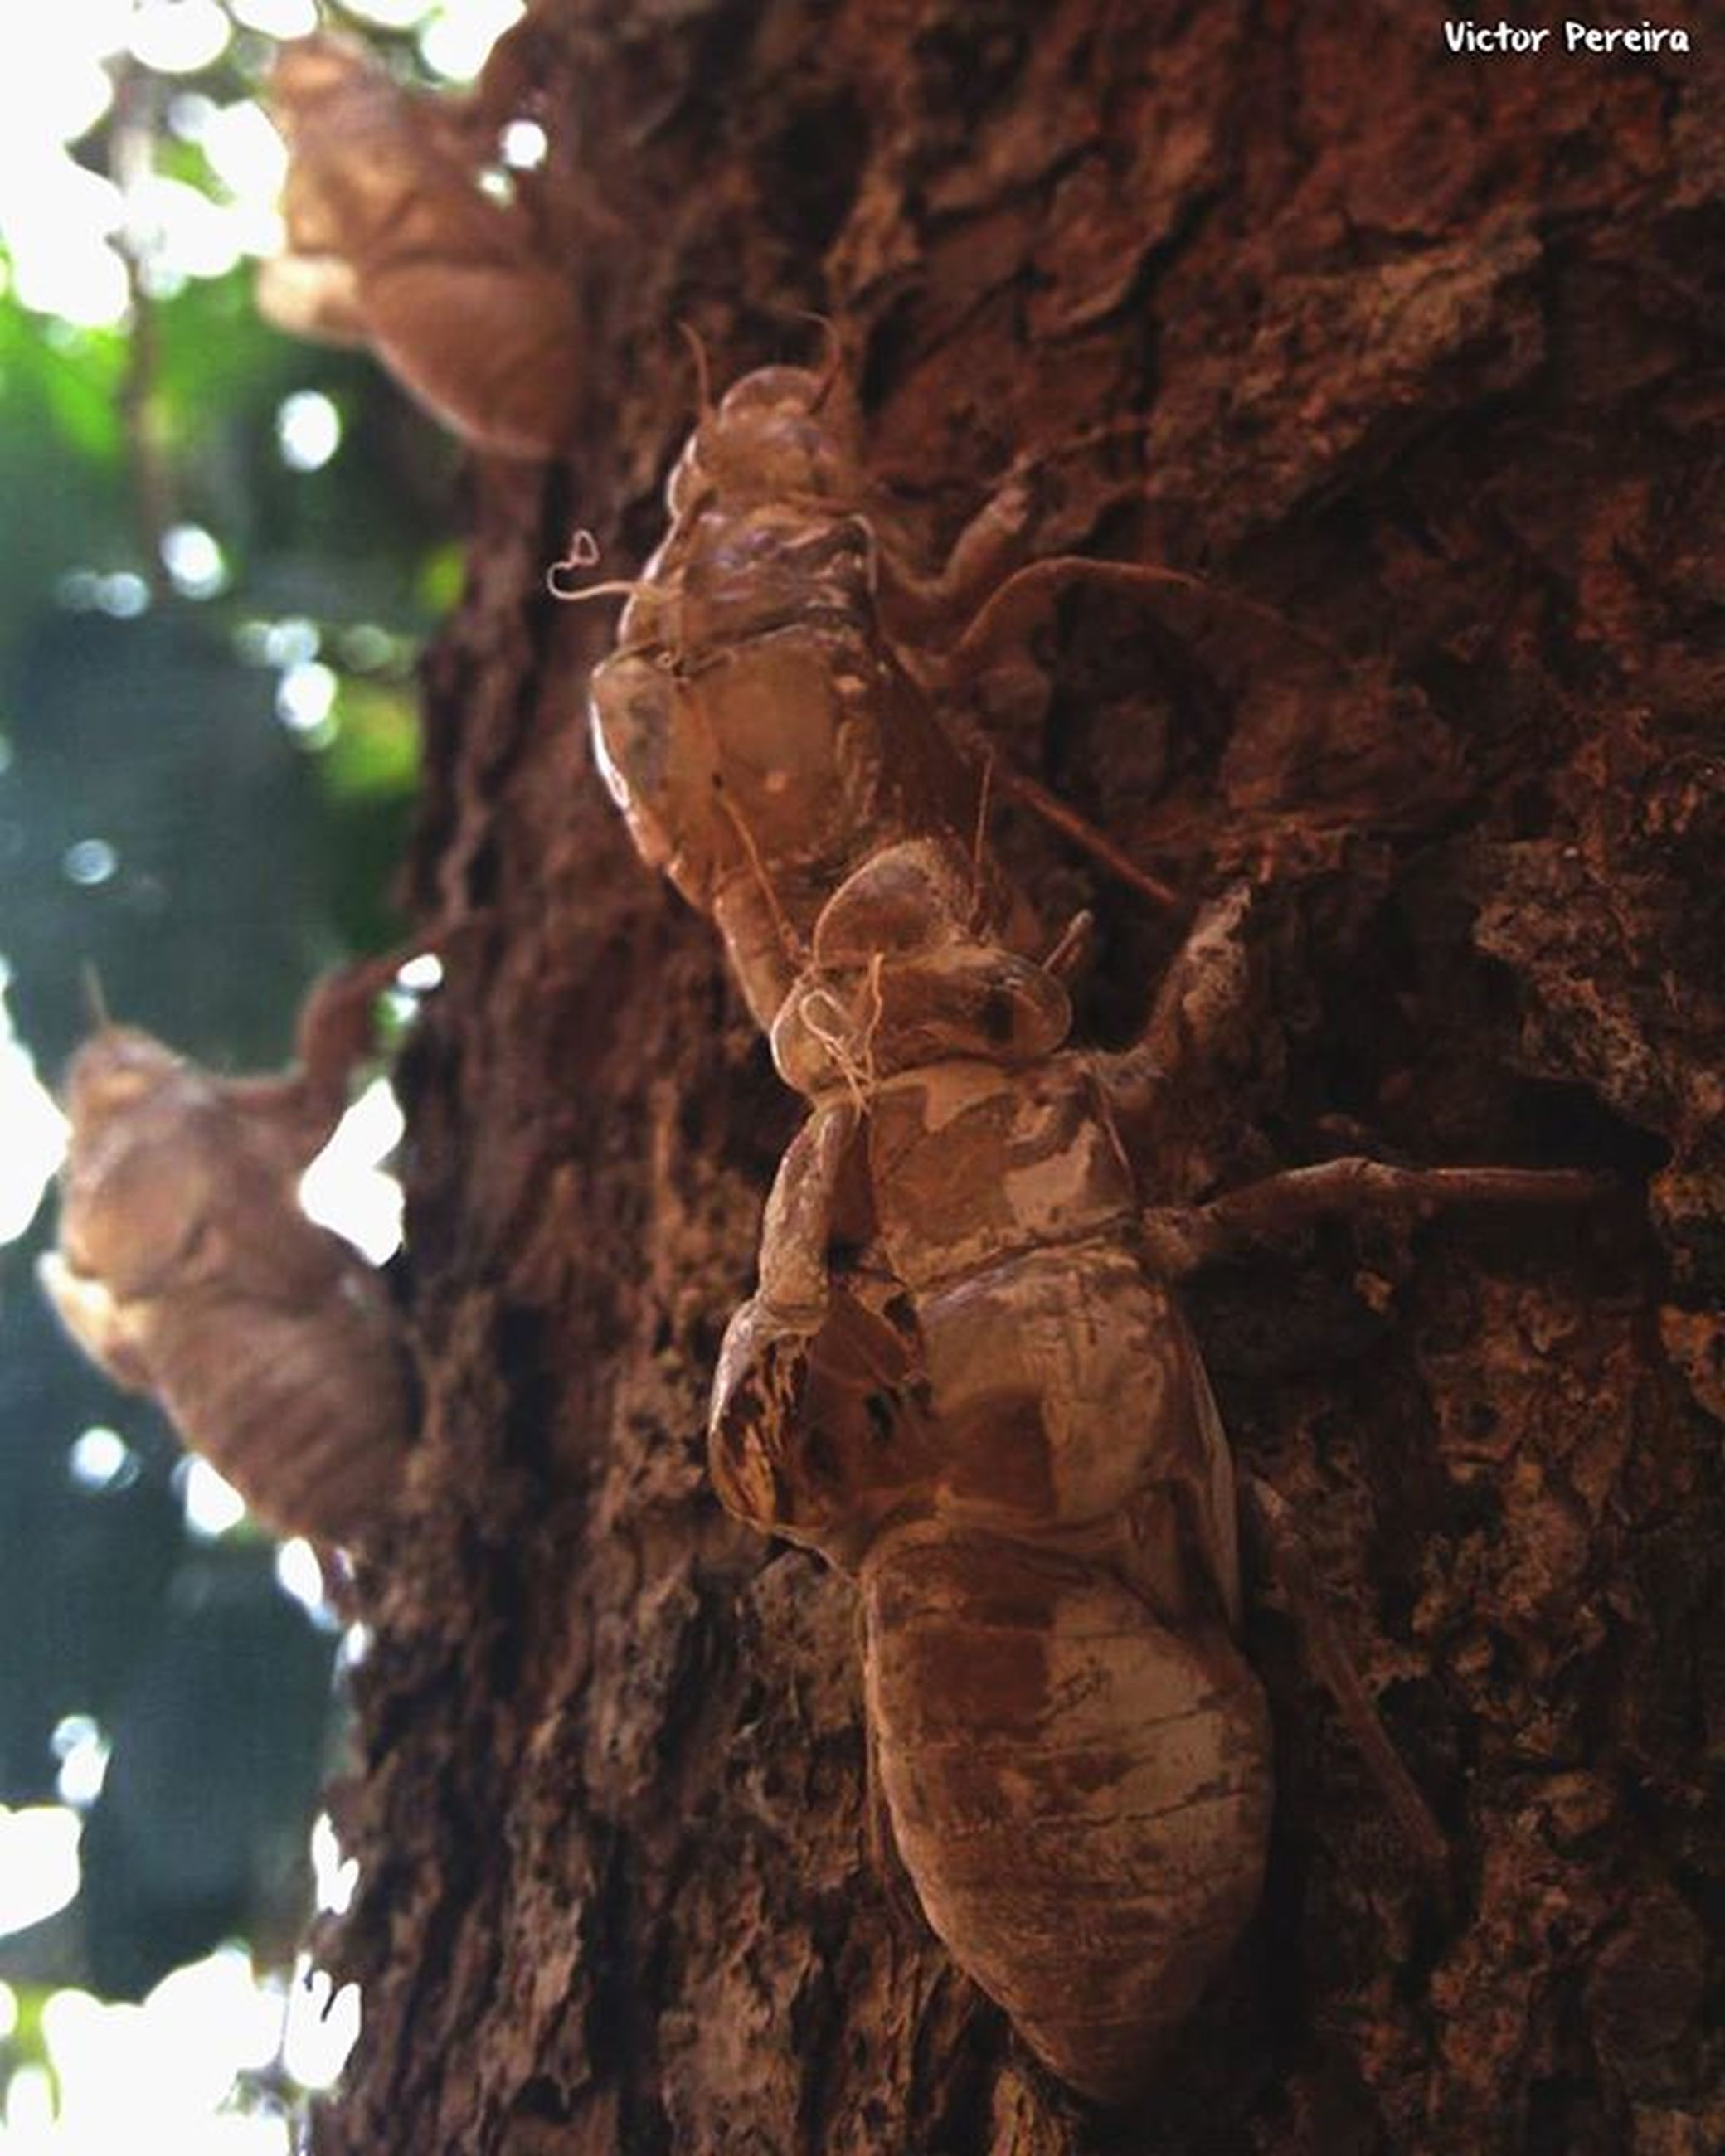 close-up, animal themes, animals in the wild, focus on foreground, wildlife, one animal, insect, nature, tree, textured, tree trunk, day, natural pattern, outdoors, brown, branch, selective focus, part of, no people, leaf